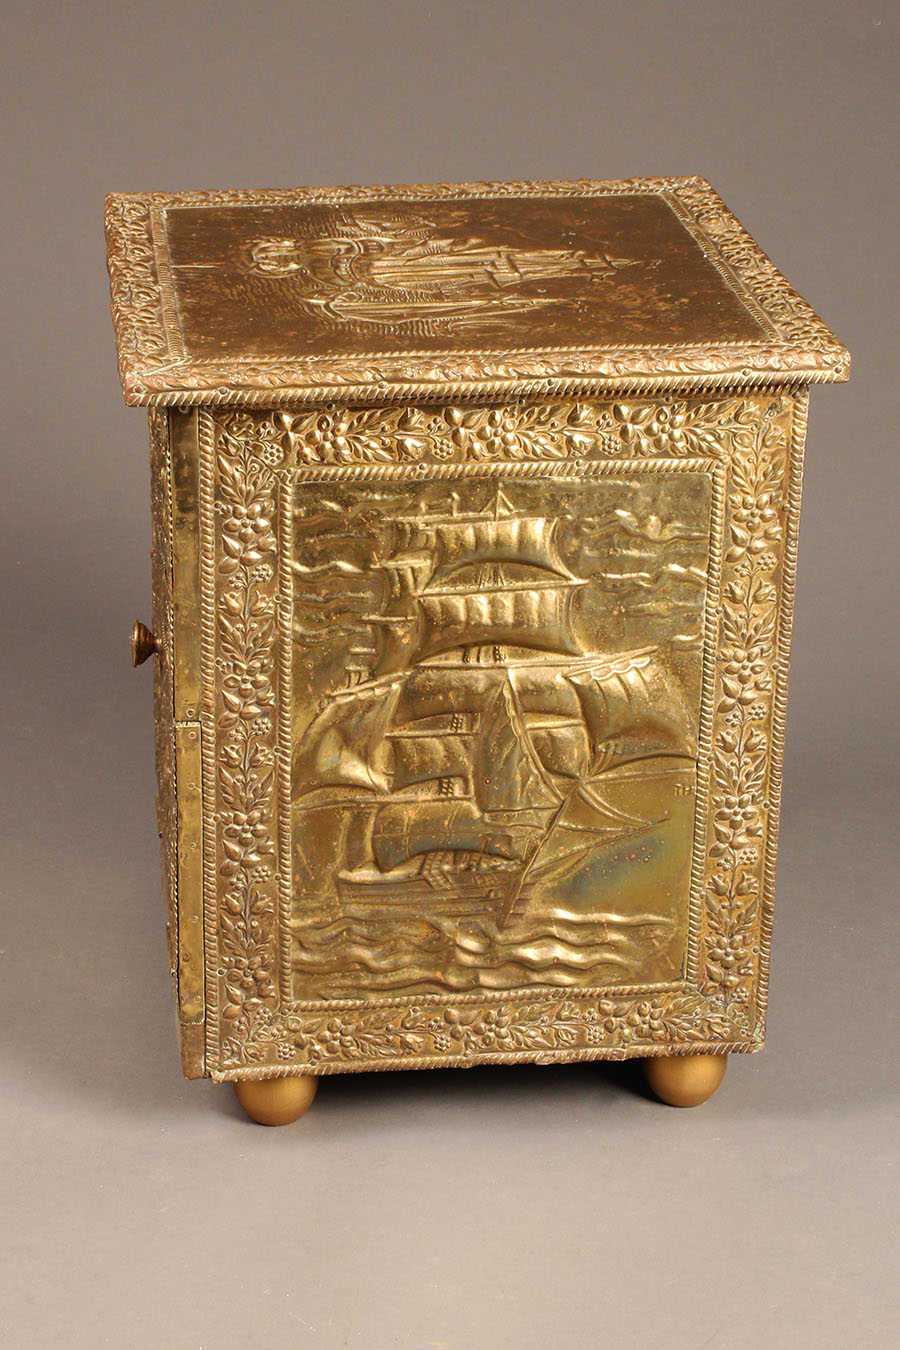 Antique English Repoussed Brass Fireside Box